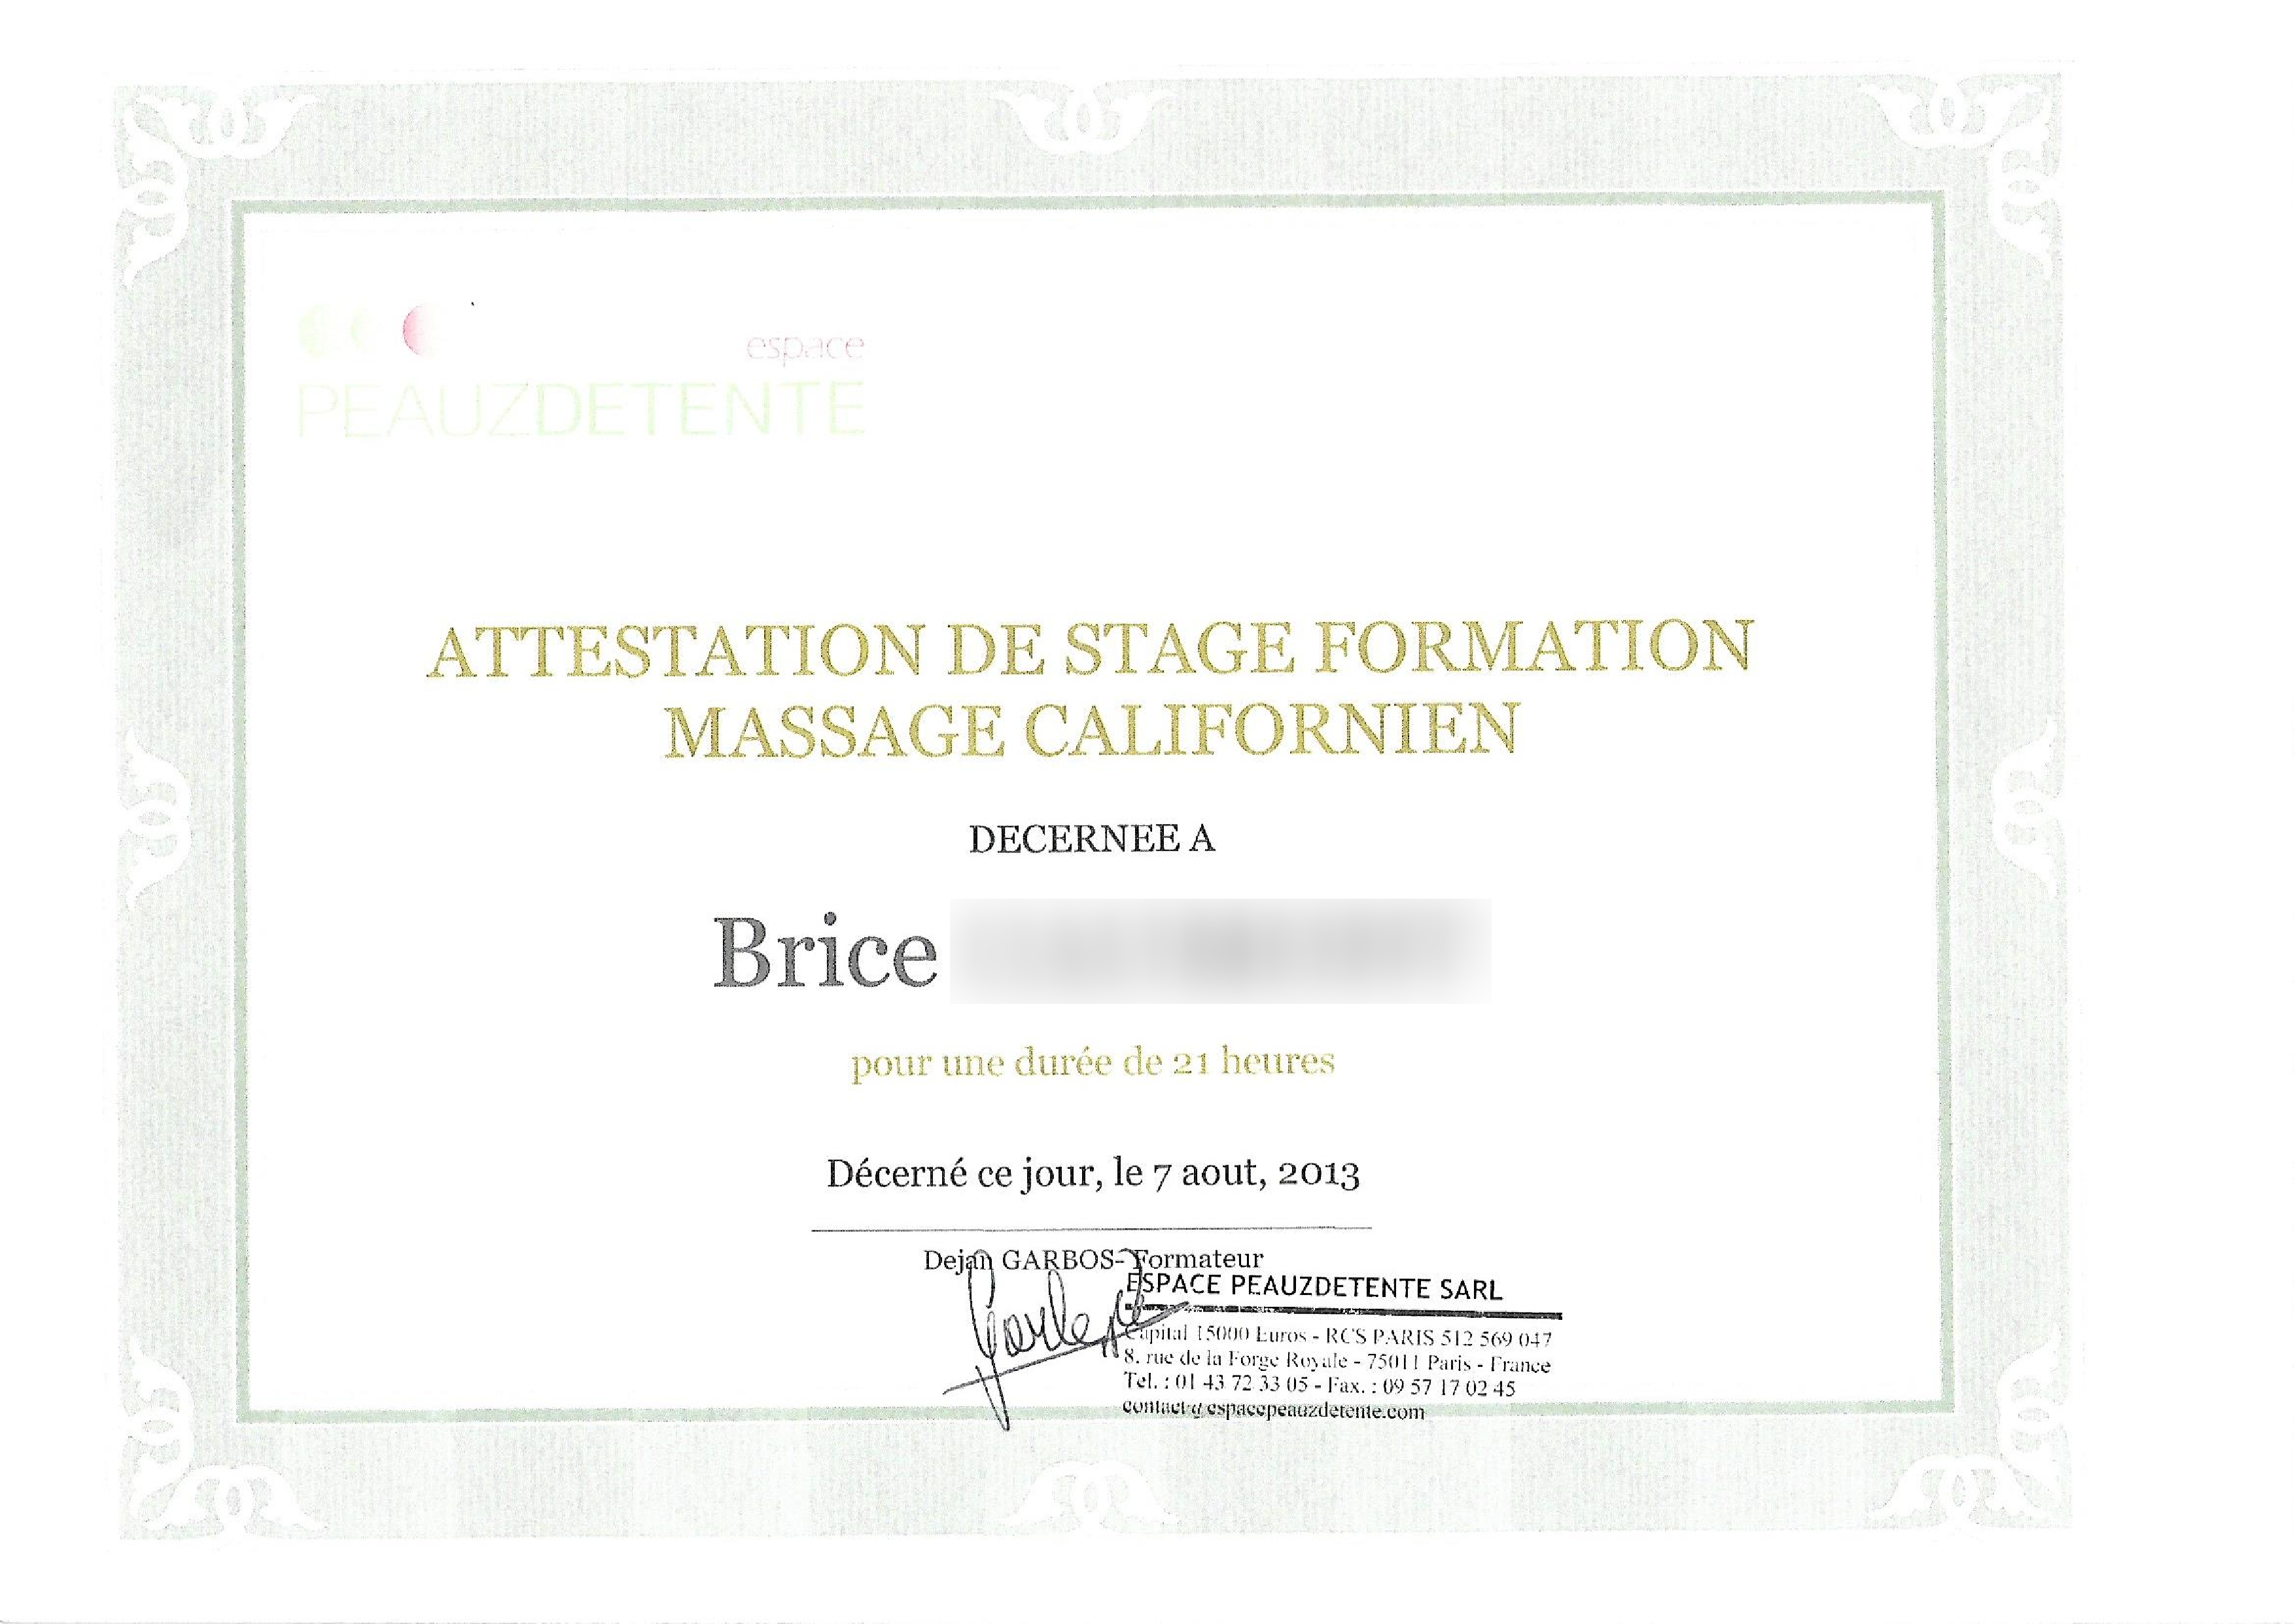 5a7ca42a7d5b0_Massage Californien Dejan Garbos.pdf